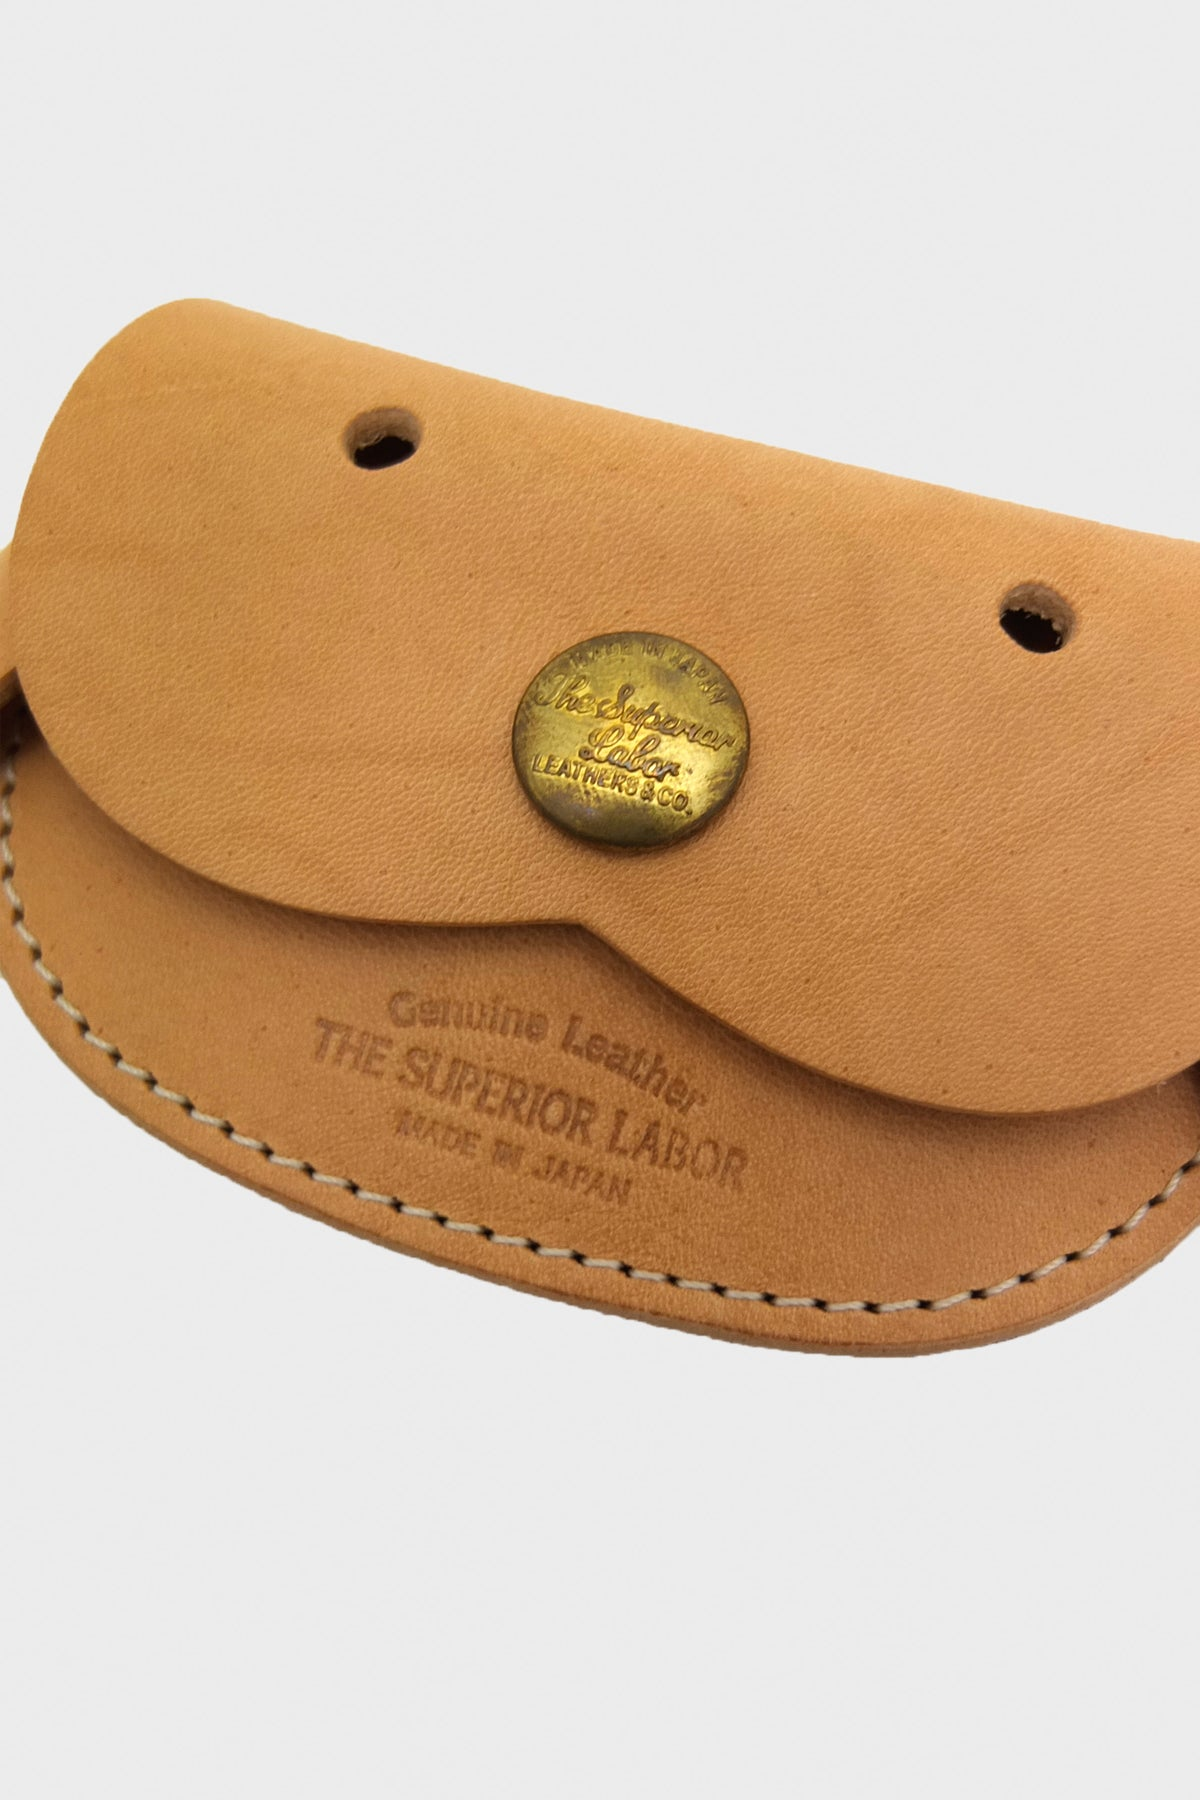 The Superior Labor - Dog Coin Case - Natural - Canoe Club